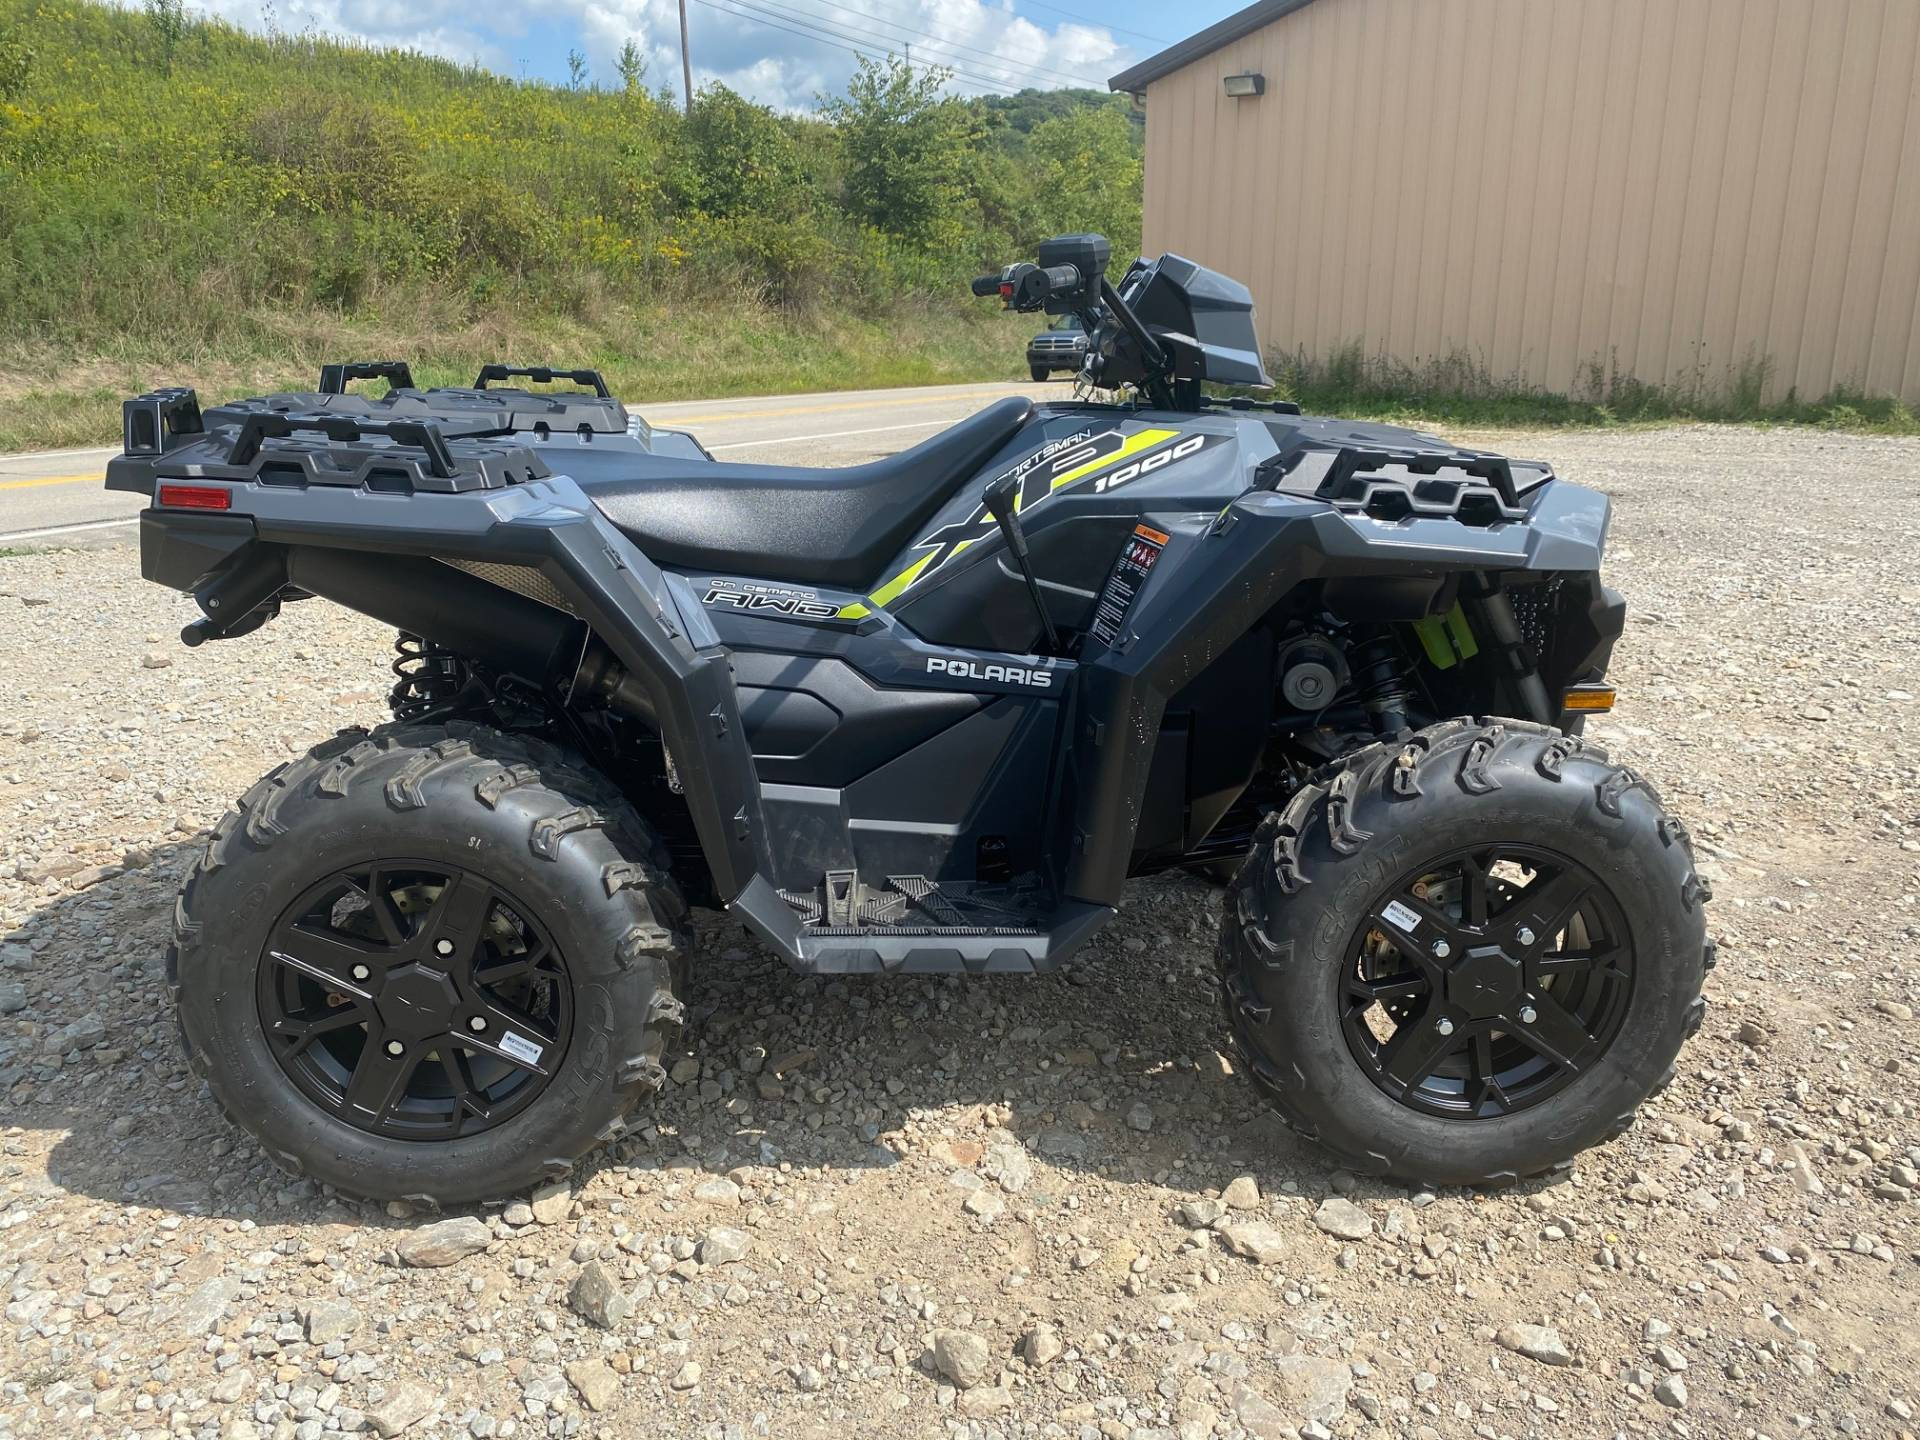 2020 Polaris Sportsman XP 1000 in Claysville, Pennsylvania - Photo 4